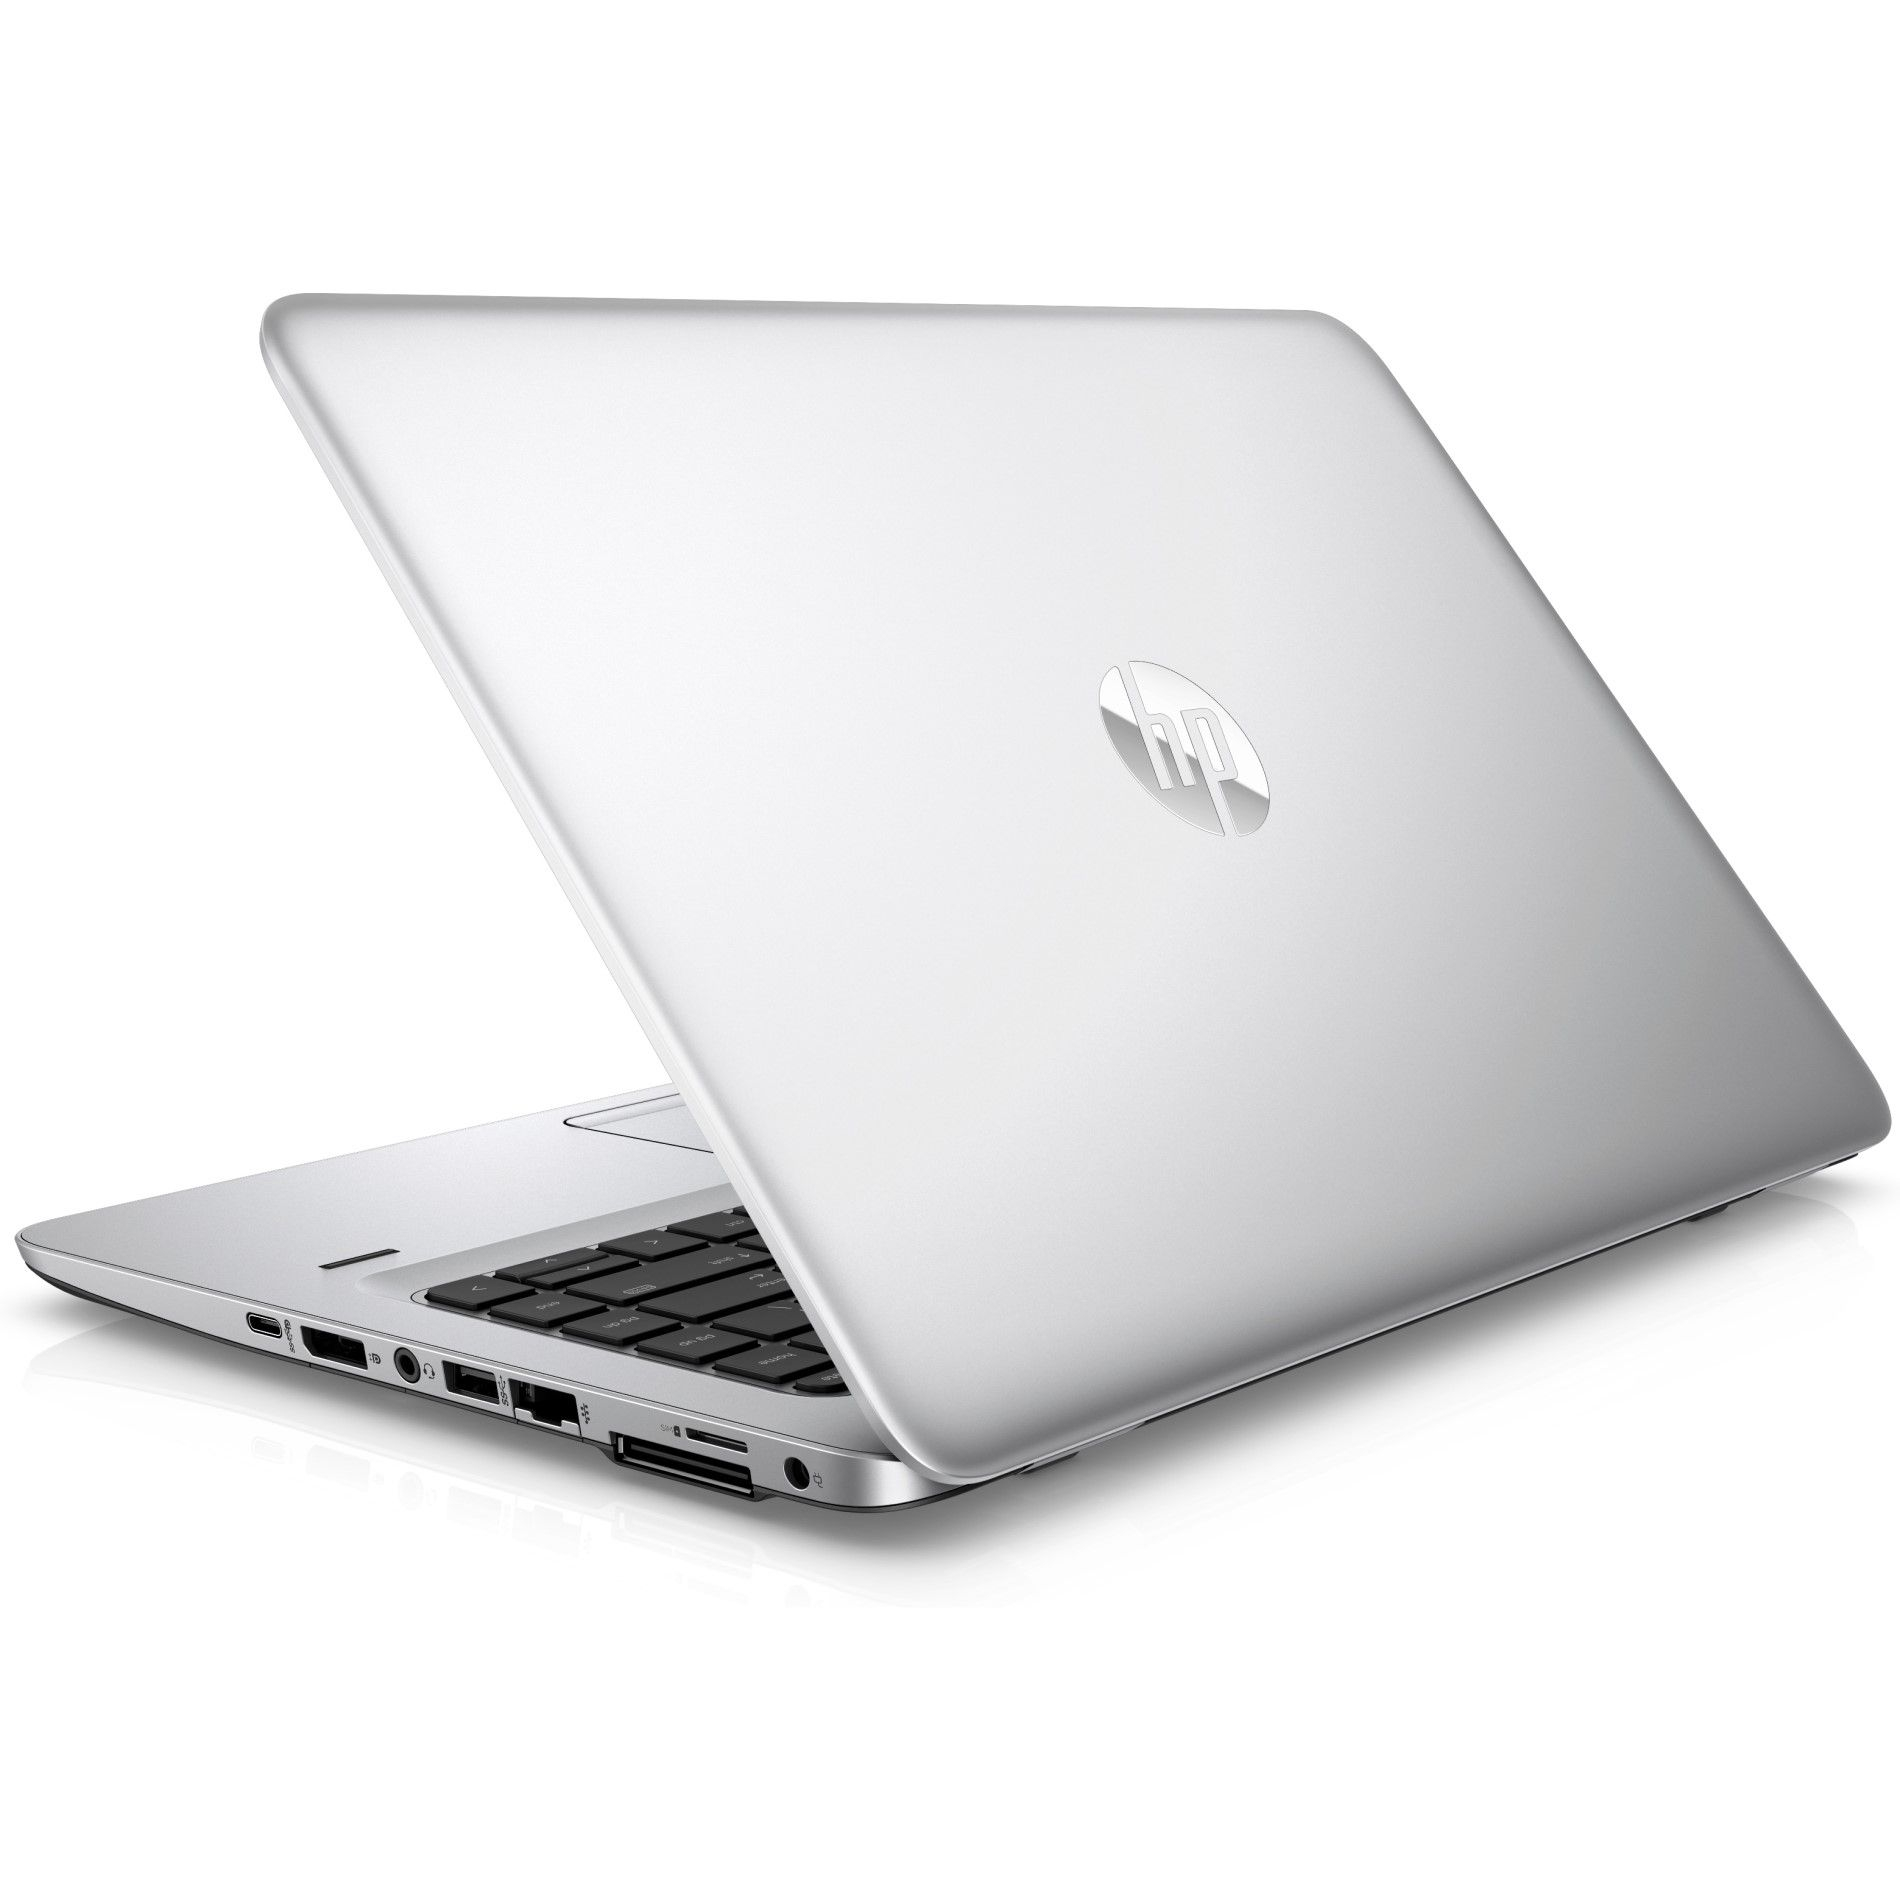 HP ELITEBOOK 840R G4 I7-8550U 1TB 8GB 14 W10P